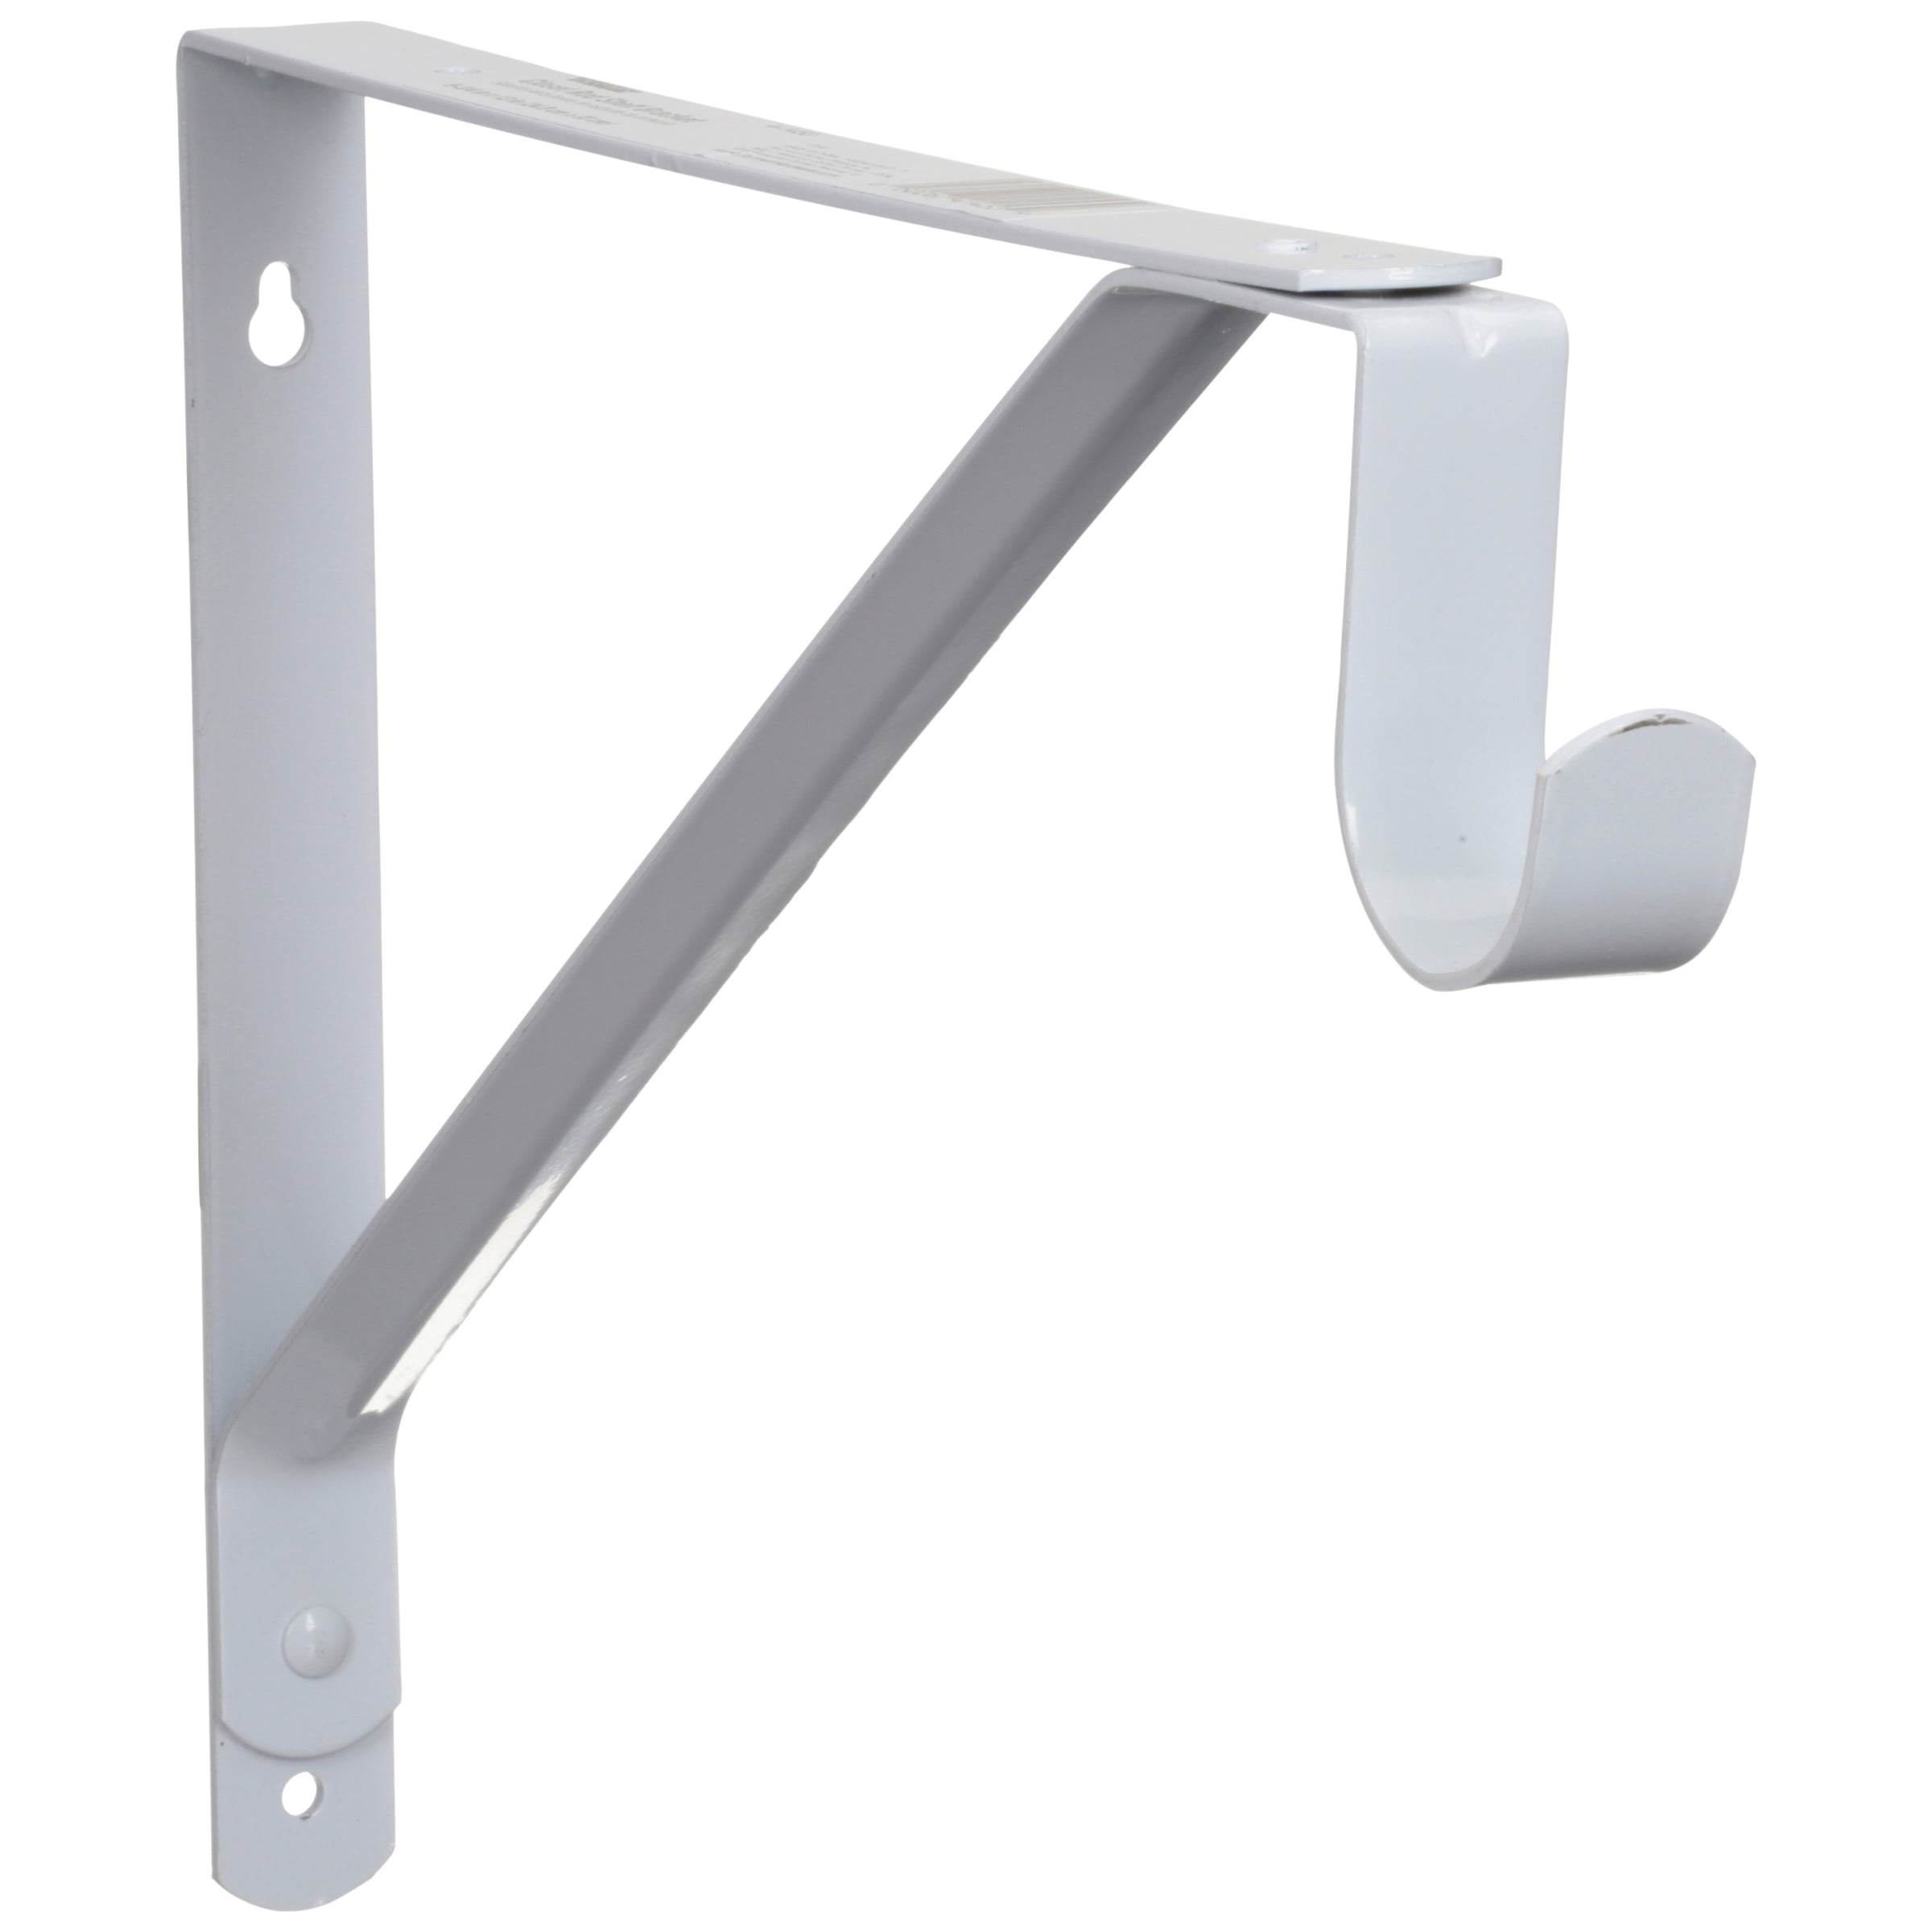 Hyper Tough Heavy Duty Steel 13 In Closet Rod Shelf Bracket White Hardware Included